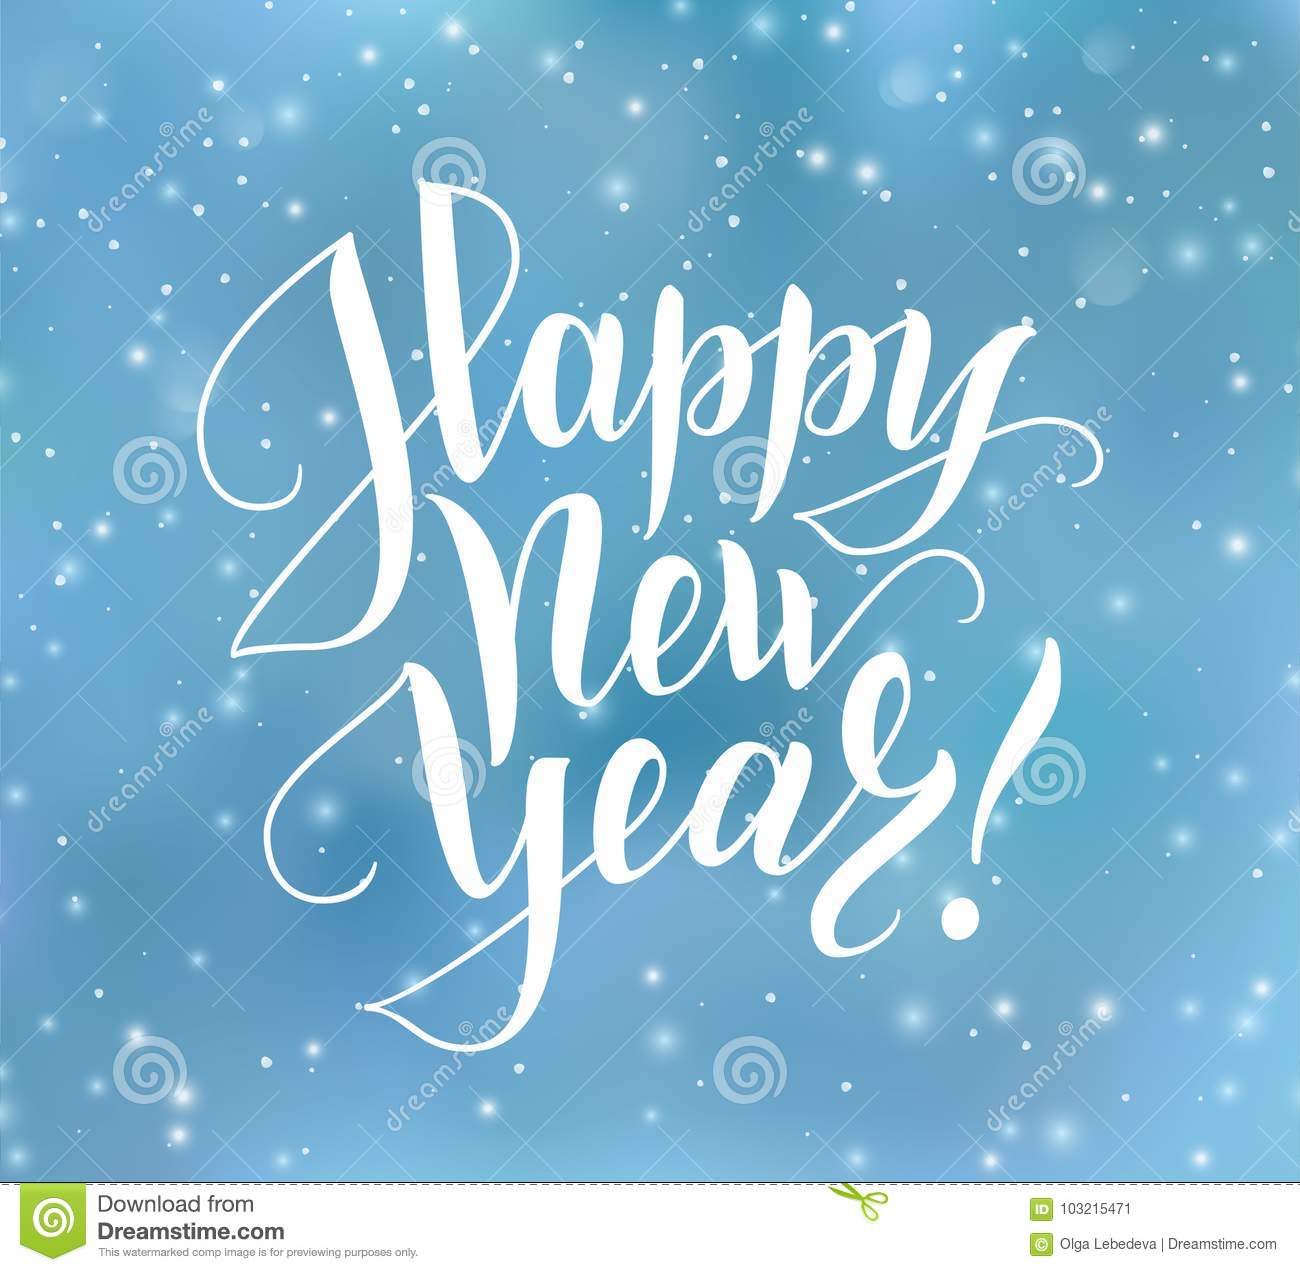 Happy New Year Text Holiday Greetings Quote Blue Blurred